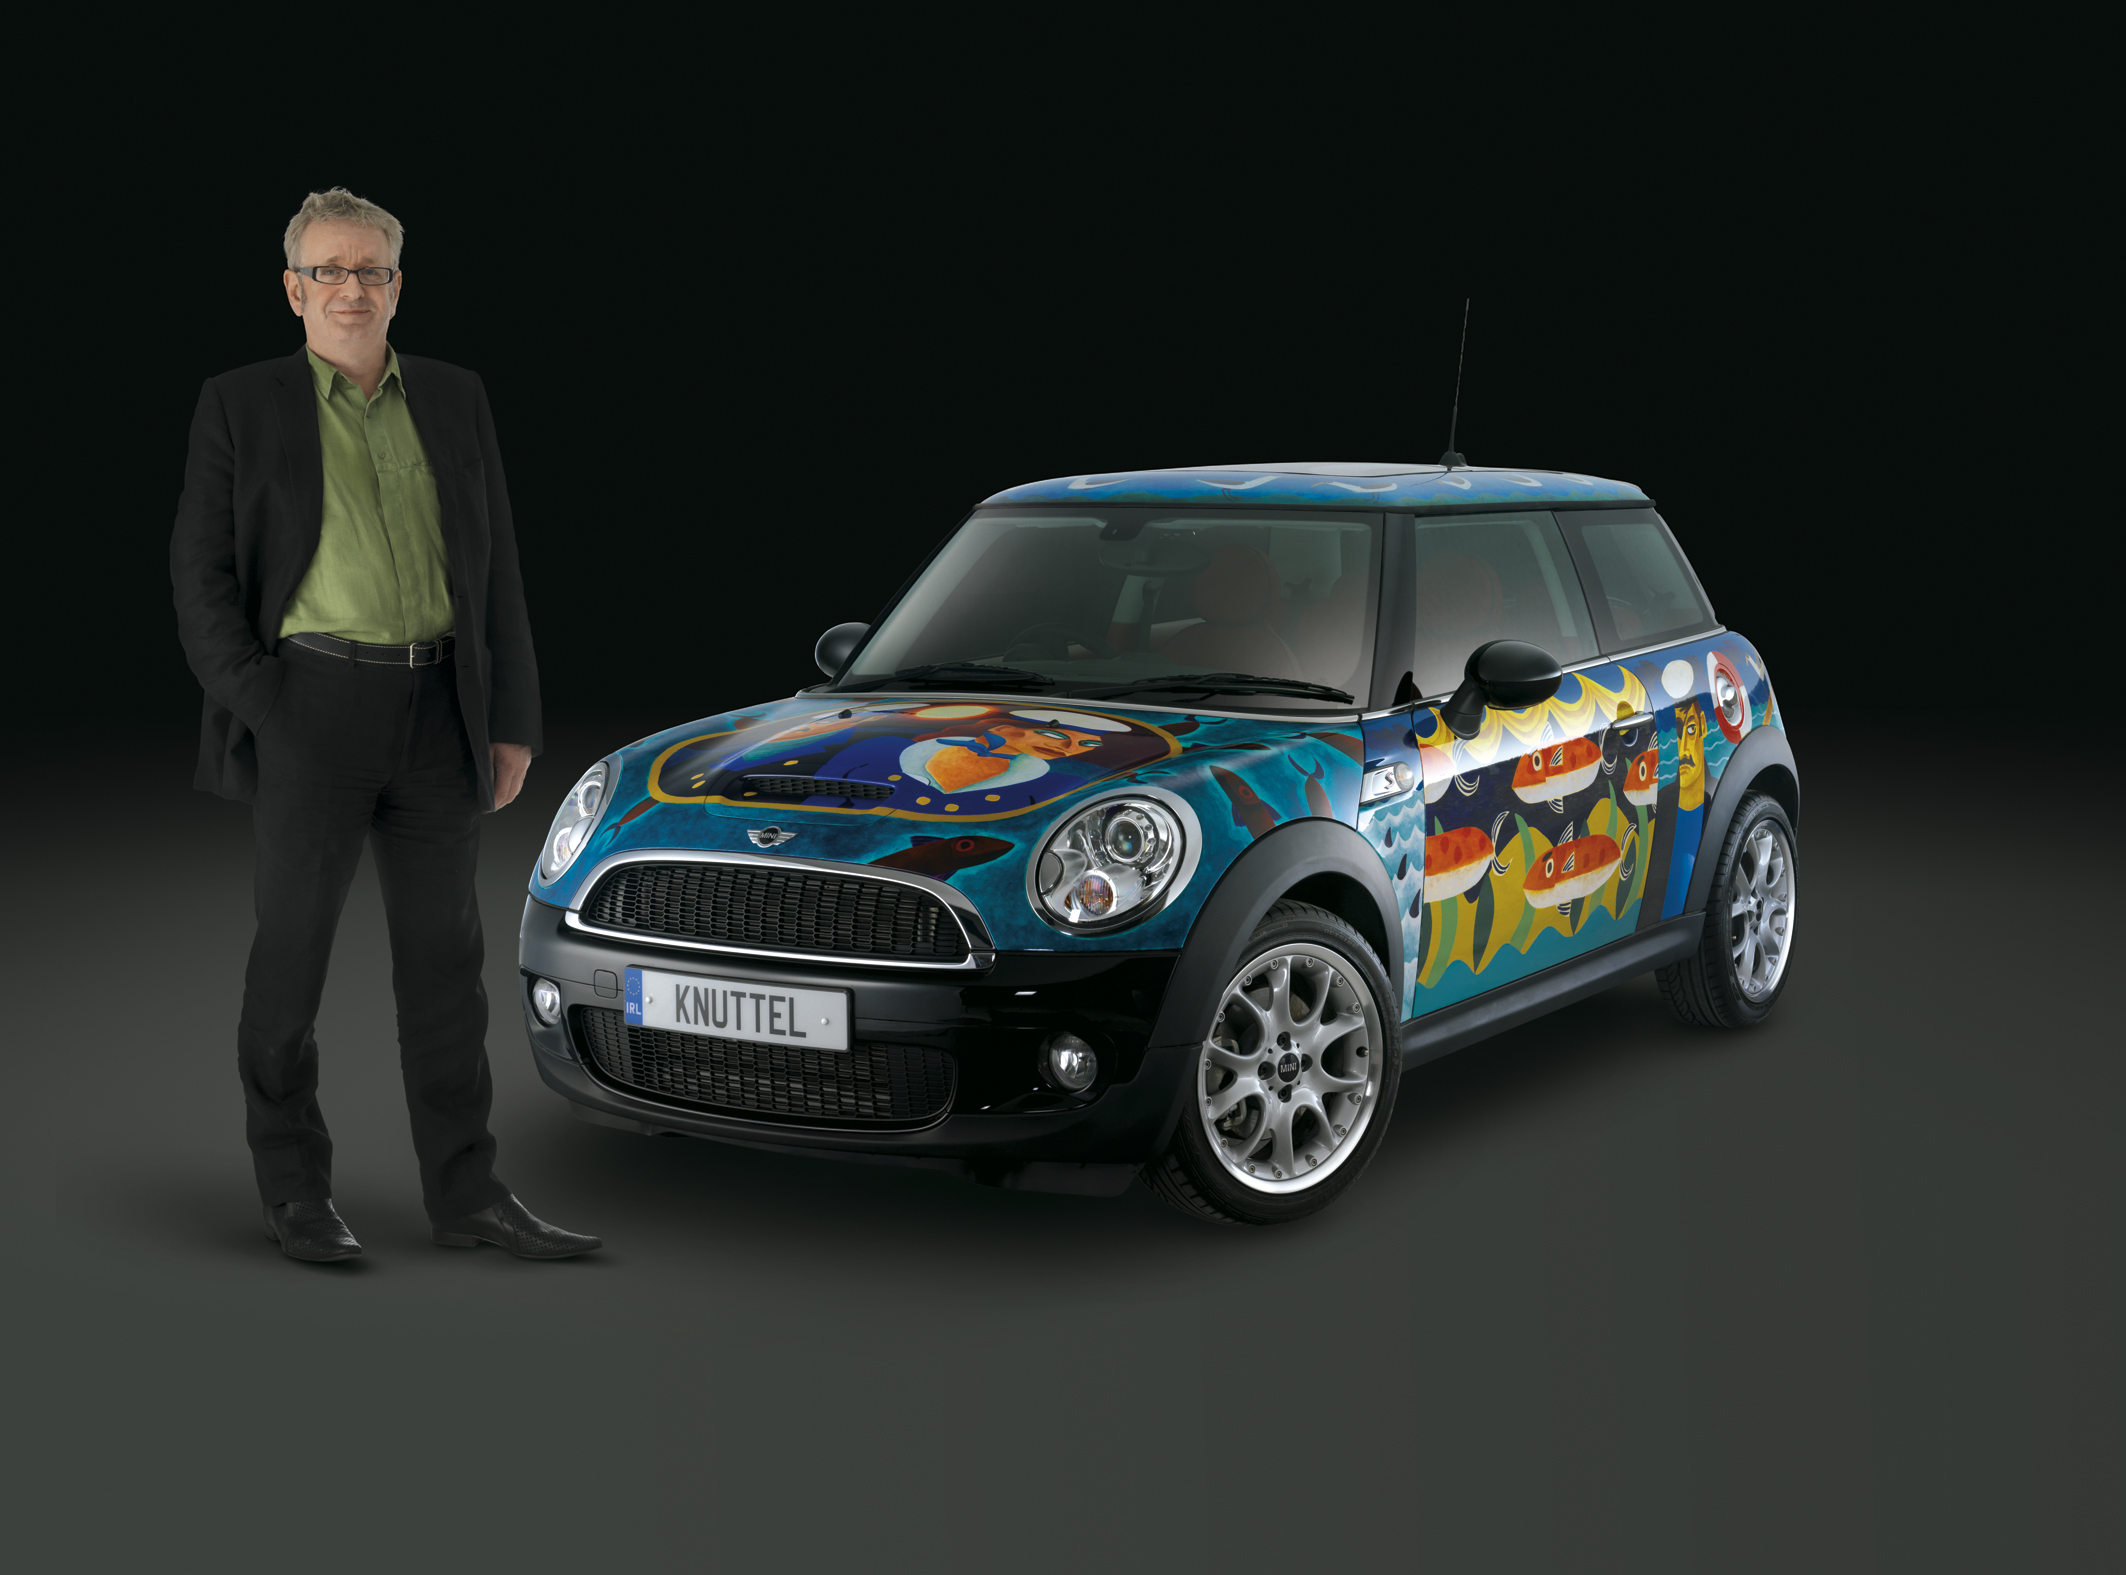 MINI Ireland R56 Graham Knuttel Art Car